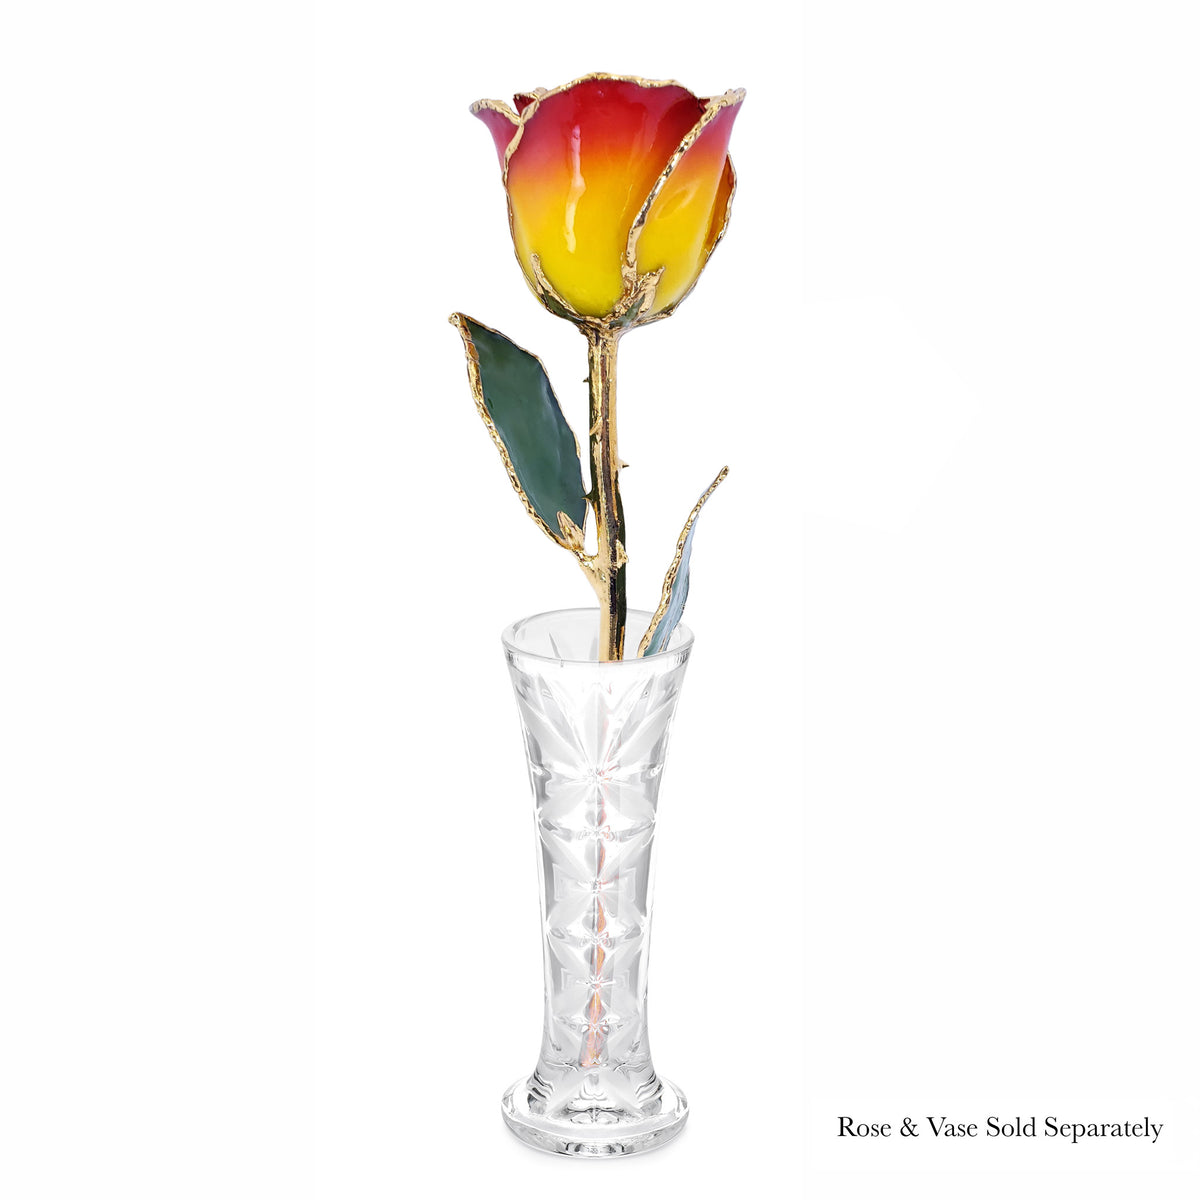 24K Gold Forever Rose - Yellow to Red